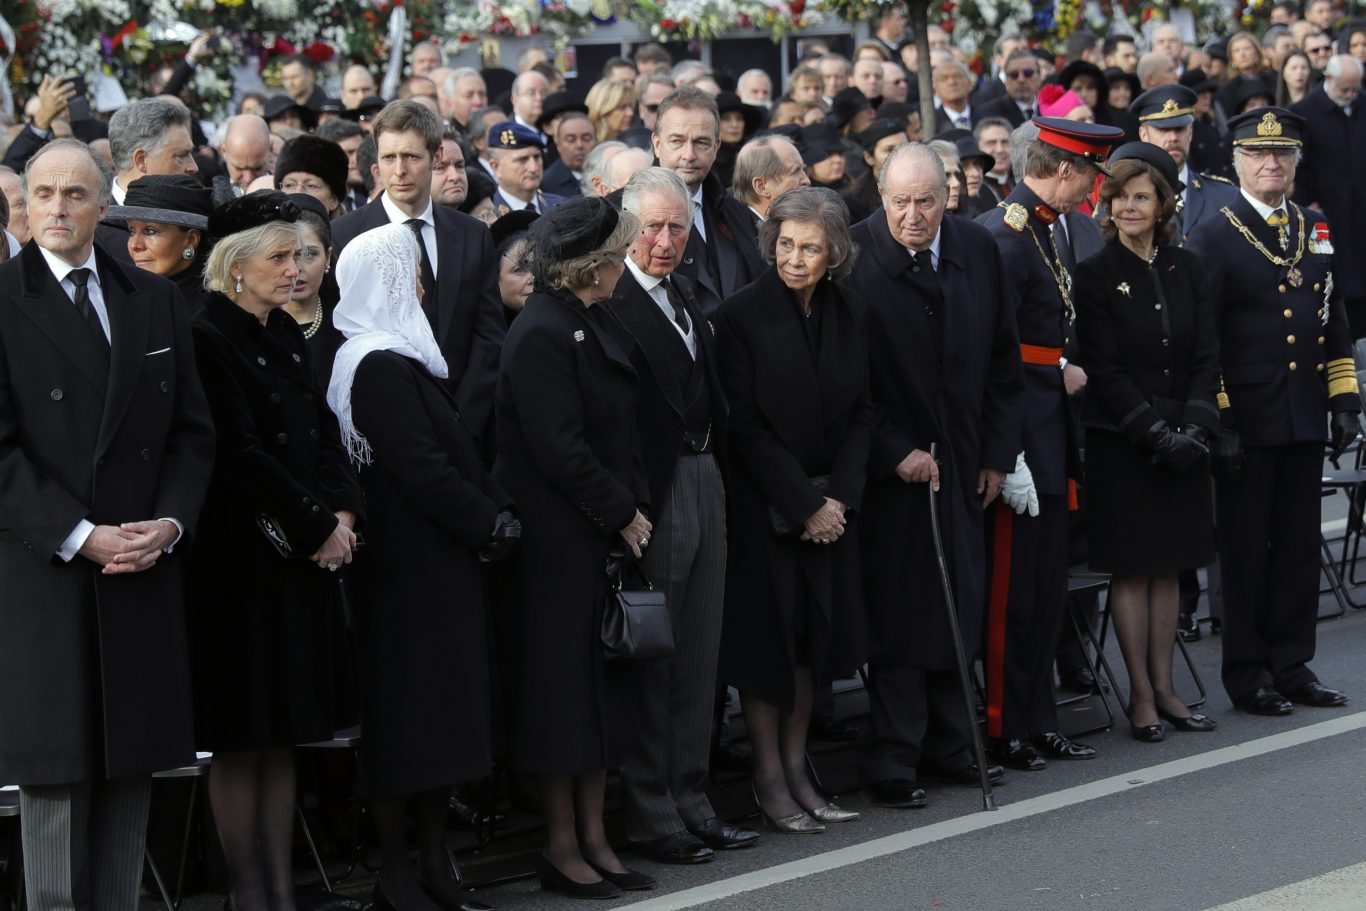 The Prince of Wales among the royals at the funeral (Vadim Ghirda/AP)